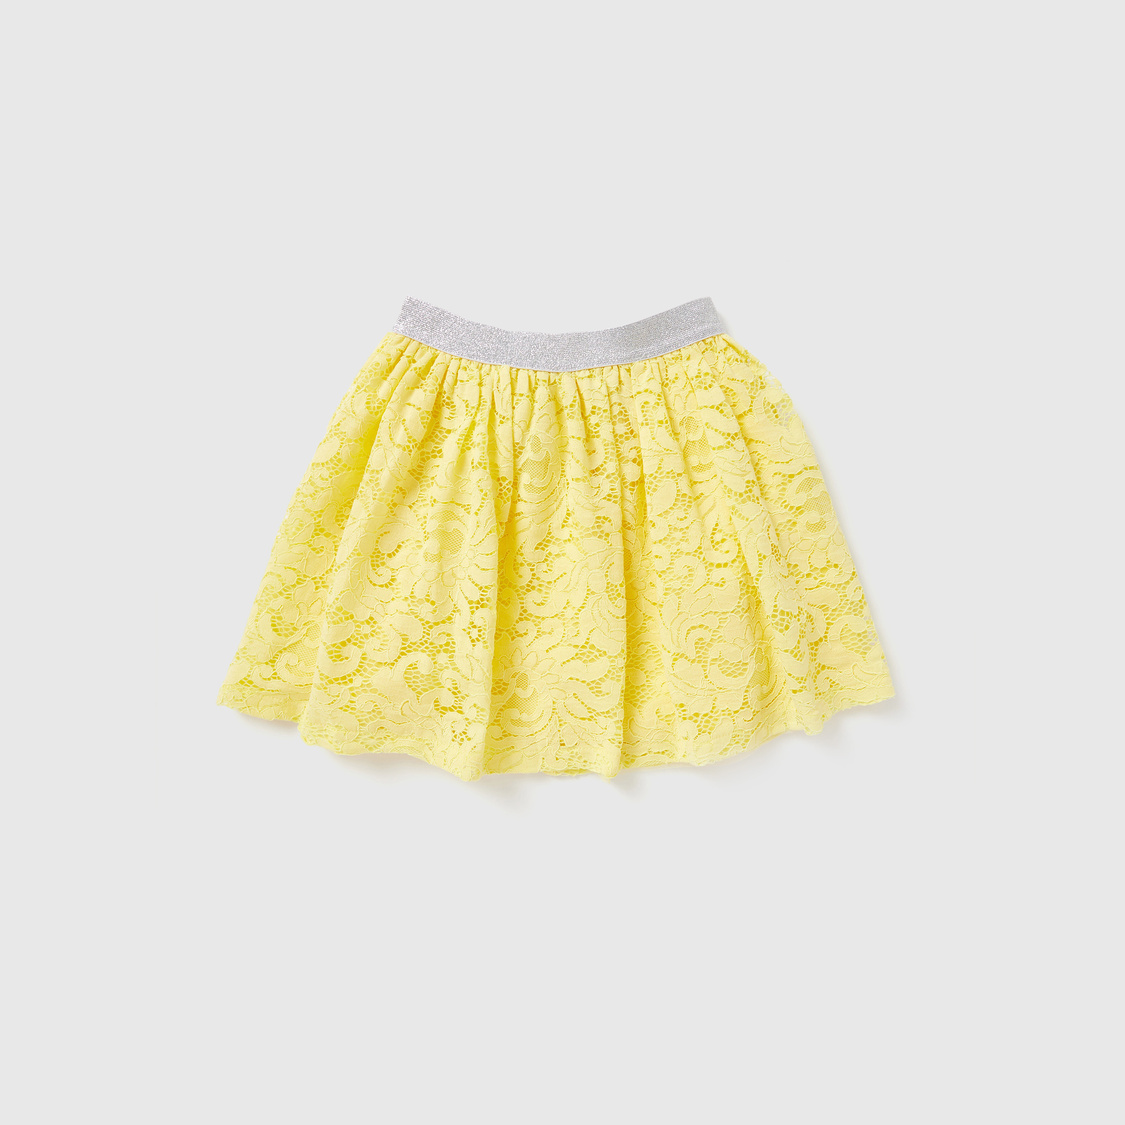 Graphic Print Short Sleeves T-shirt with Lace Detail Skirt Set